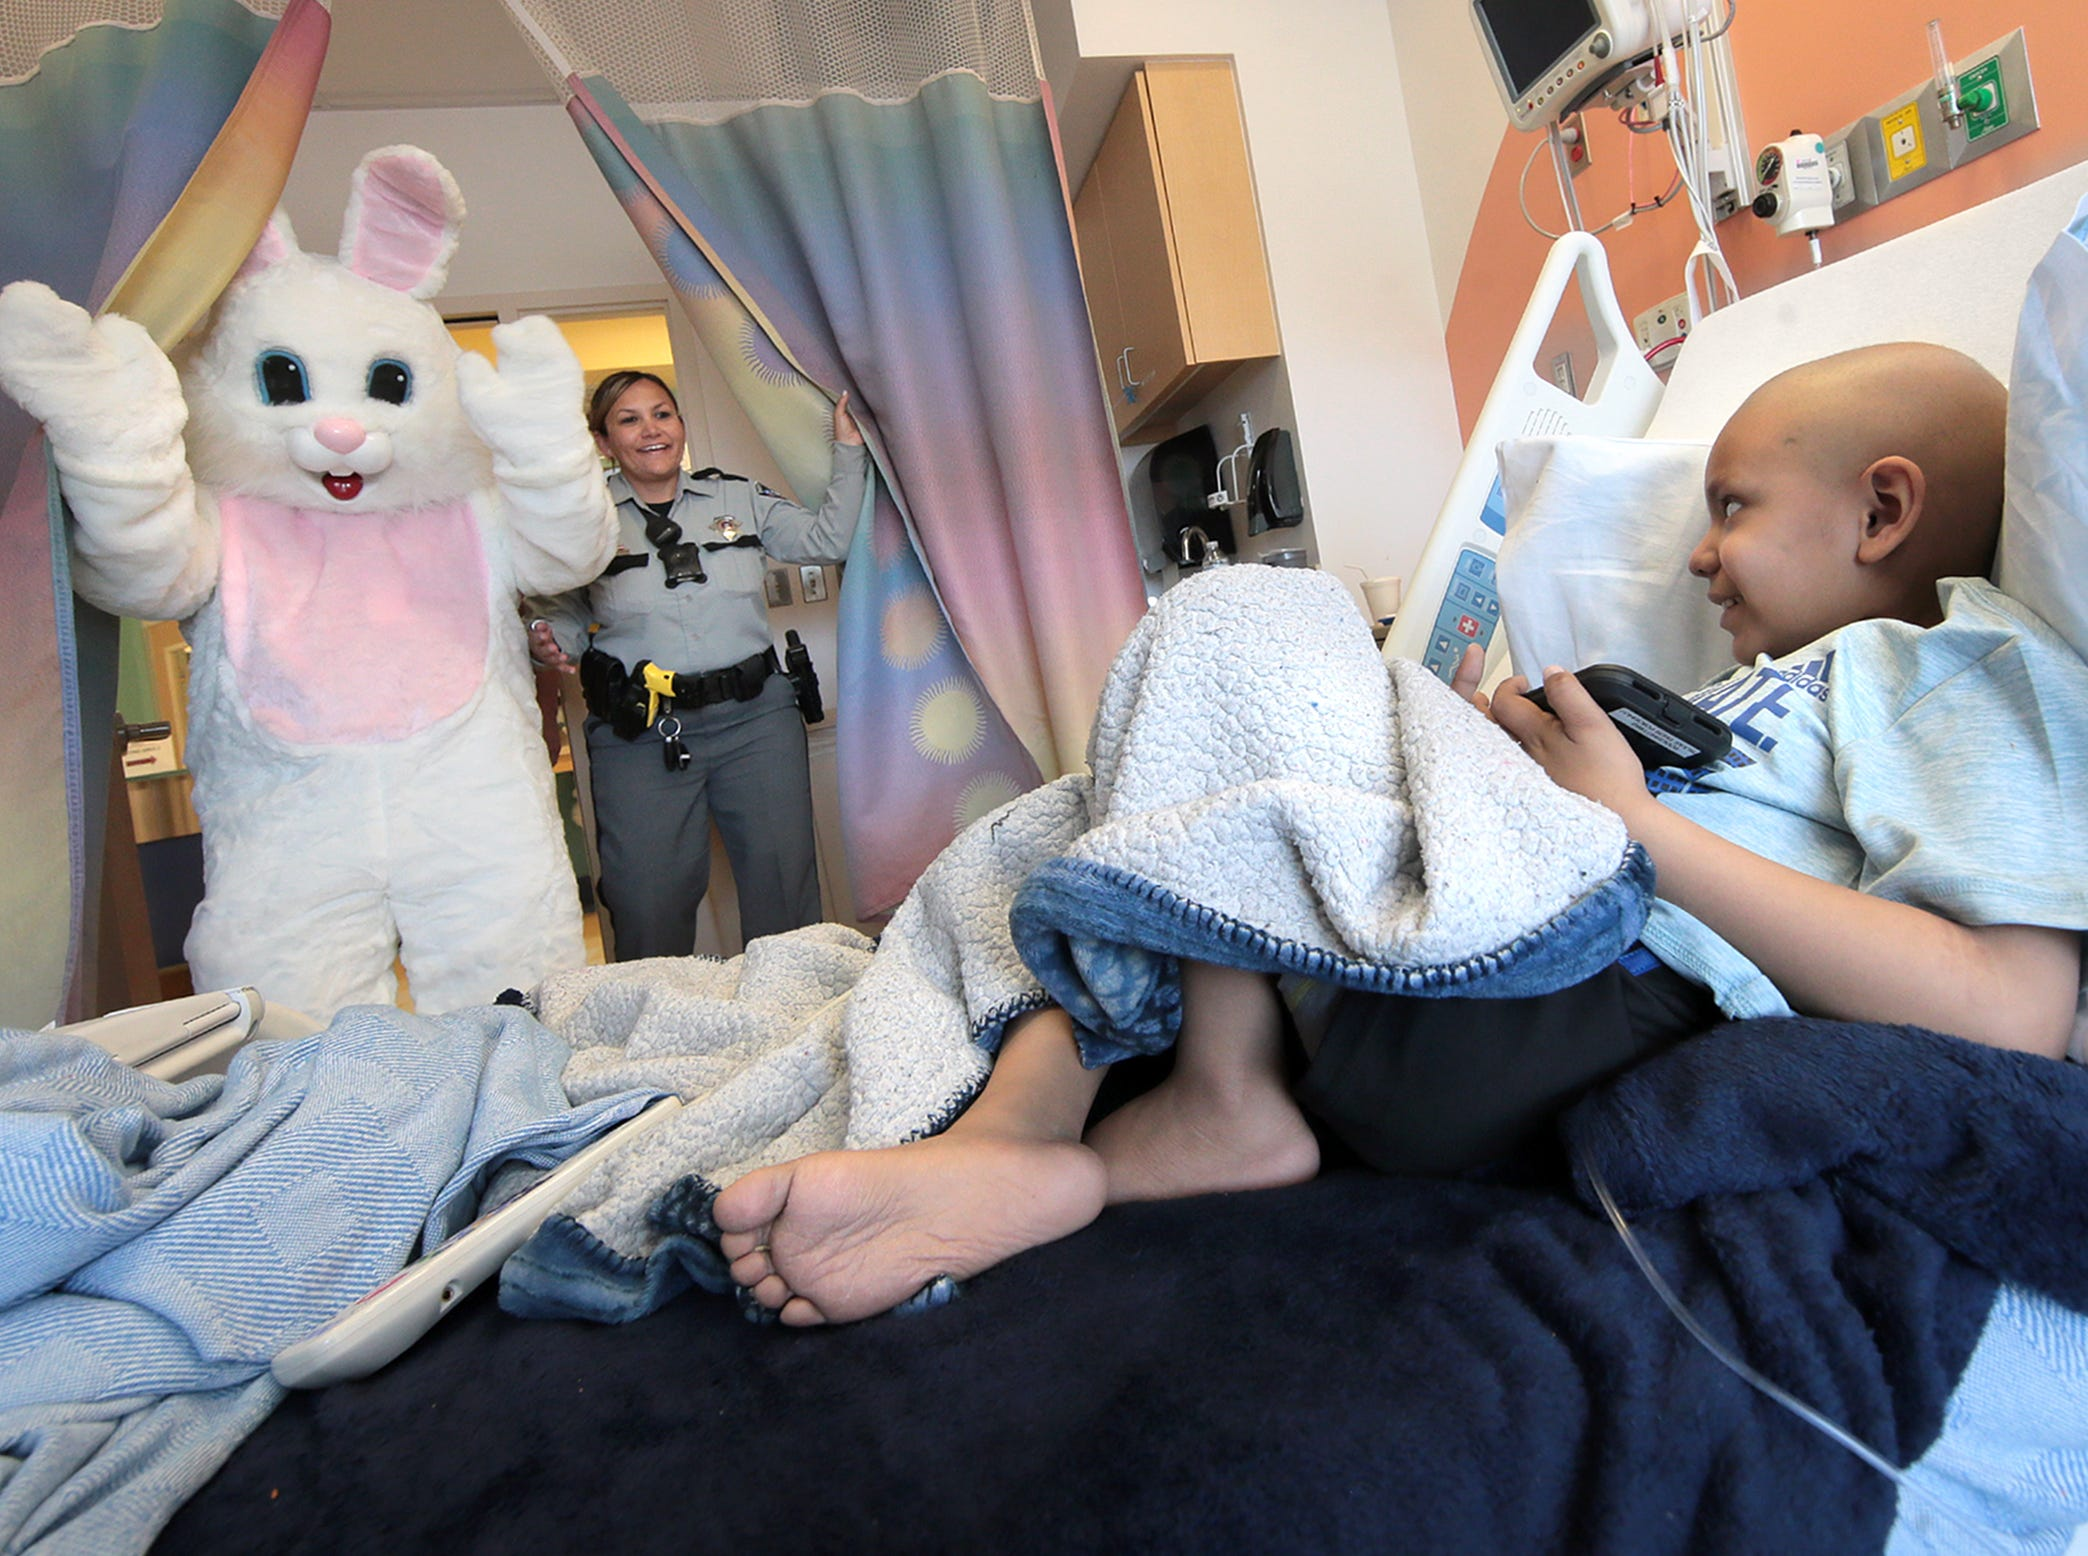 Deputy Josie Ramirez and the Easter Bunny visit 5-year-old Esteban Lerma and the other kids at El Paso Children's Hospital on Thursday afternoon, April 18, 2019. Sheriff Richard Wiles joined the Easter Bunny in delivering gifts to children who will be in the hospital over the Easter weekend.